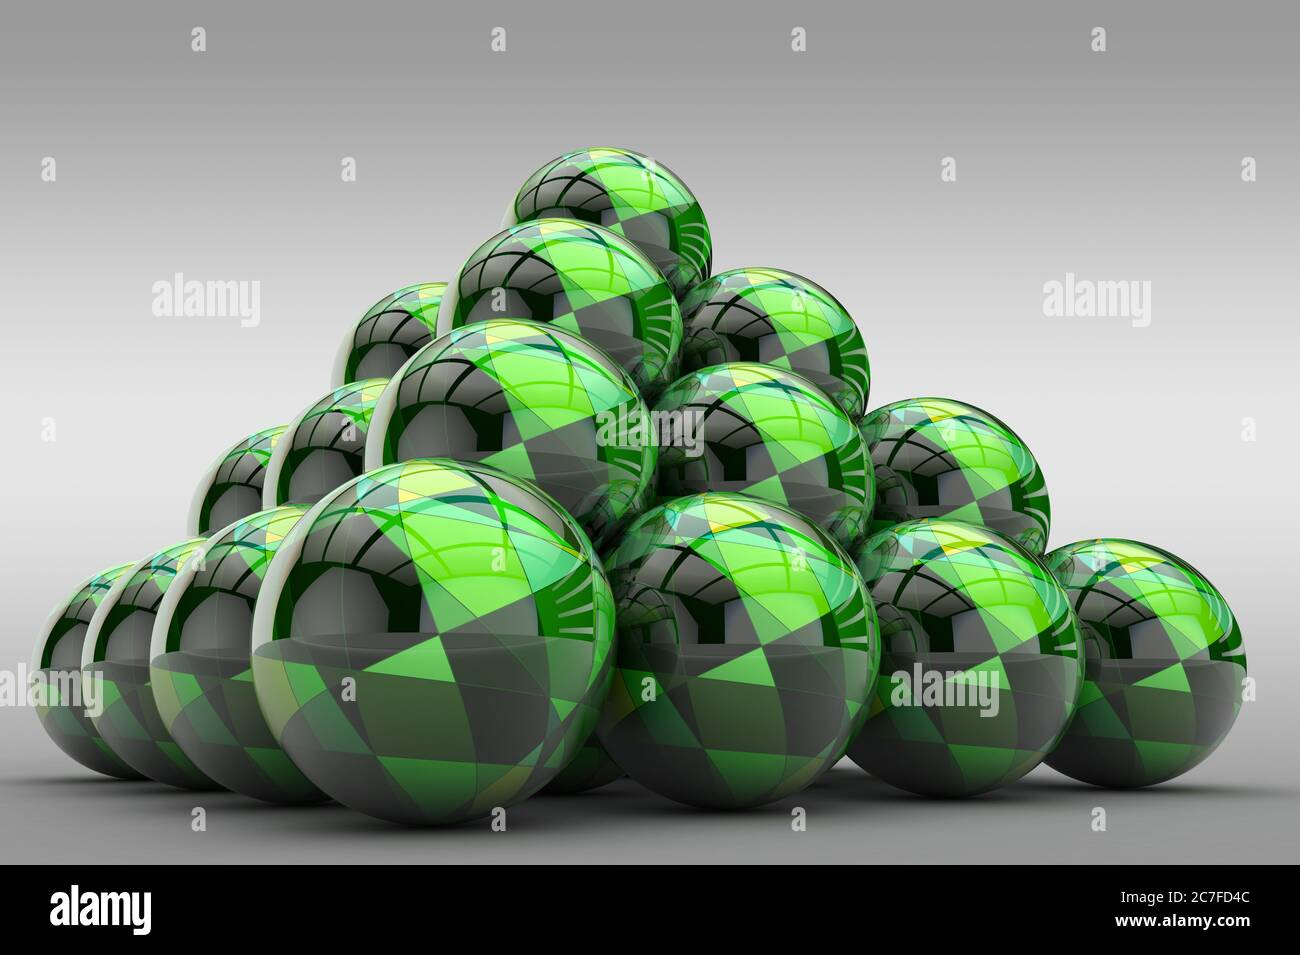 3D pyramid of spheres with a glossy finish and an abstract pattern in the form of geometric shapes Stock Photo